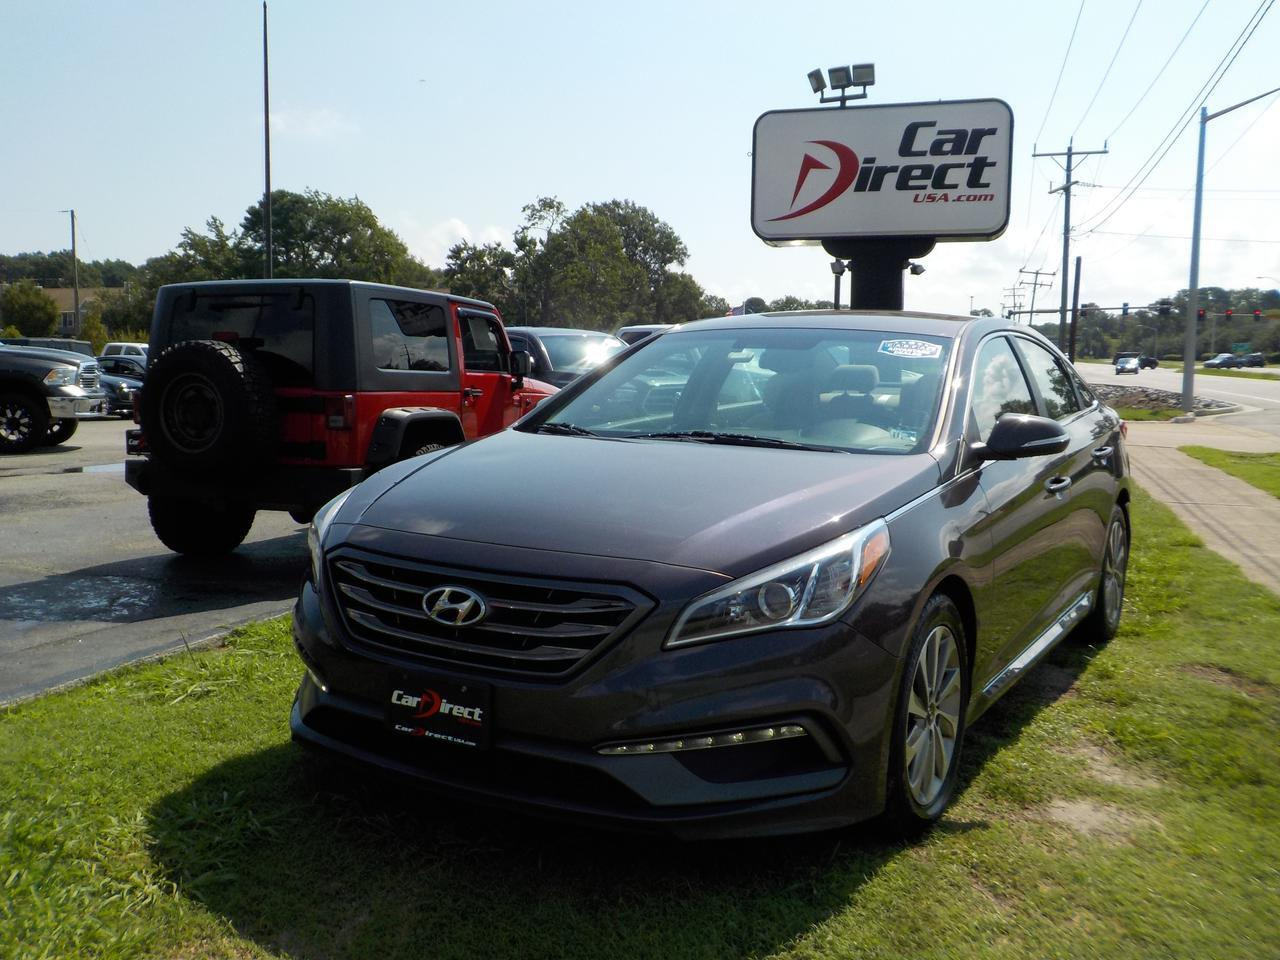 2015 HYUNDAI SONATA SPORT, BACKUP CAM, BLUETOOTH, SIRIUS RADIO, CRUISE CONTROL, A/C, CLEAN CARFAX! Virginia Beach VA